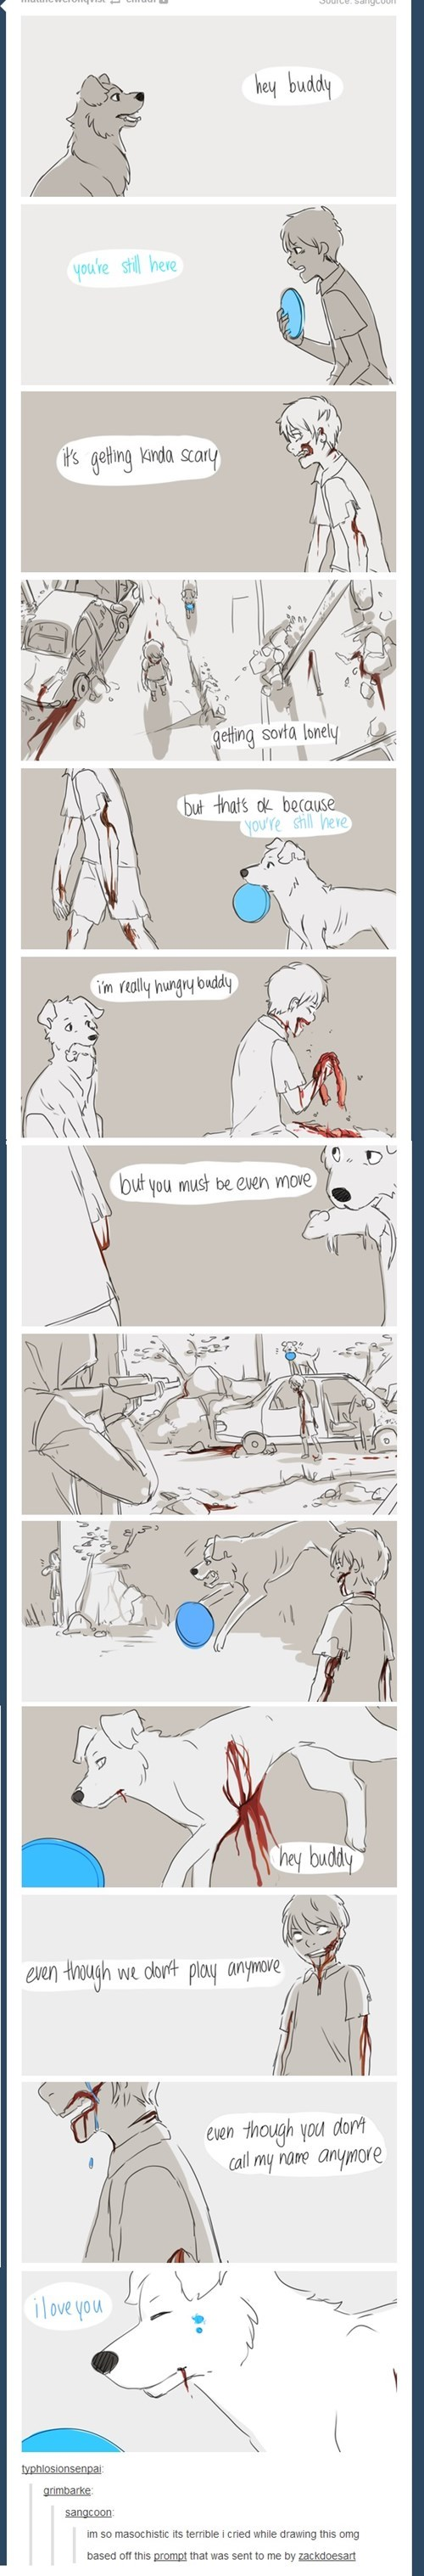 dogs zombie zombie apocalypse the feels web comics